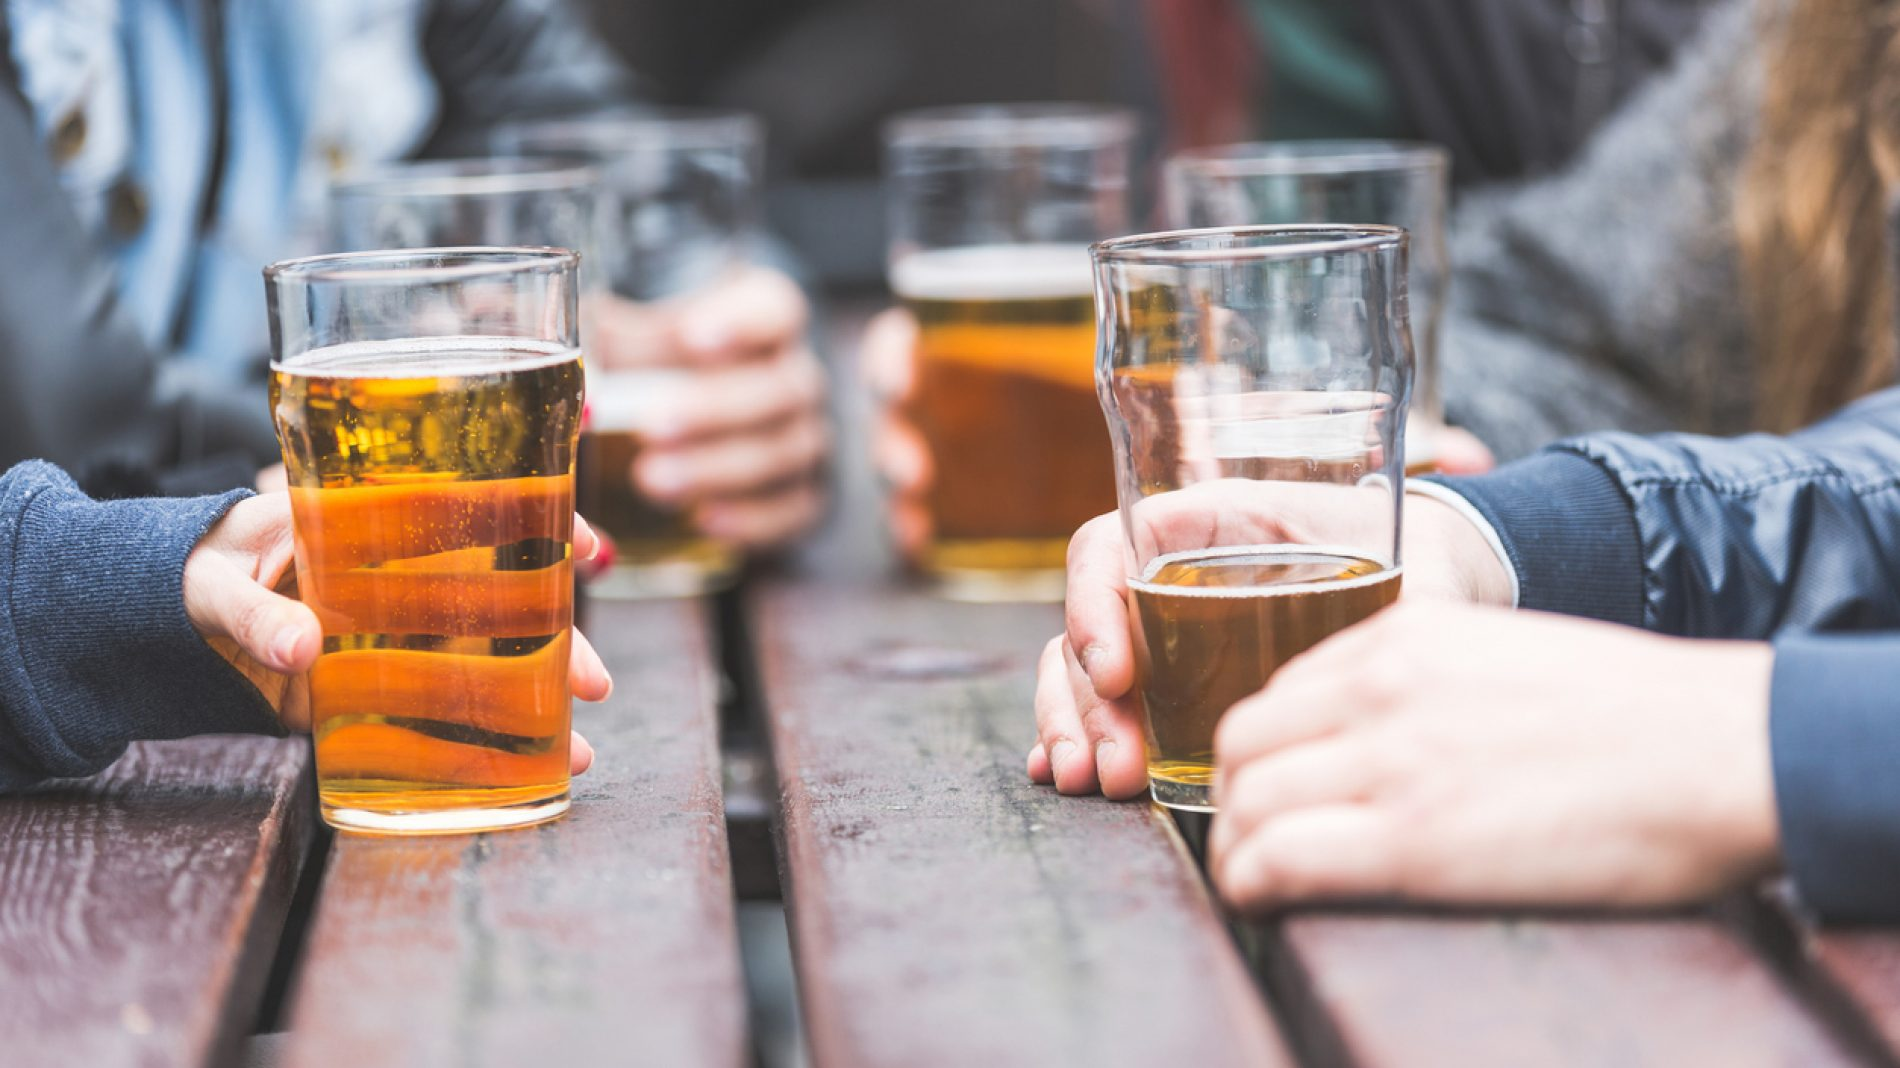 Hands holding glasses with beer on a table in London